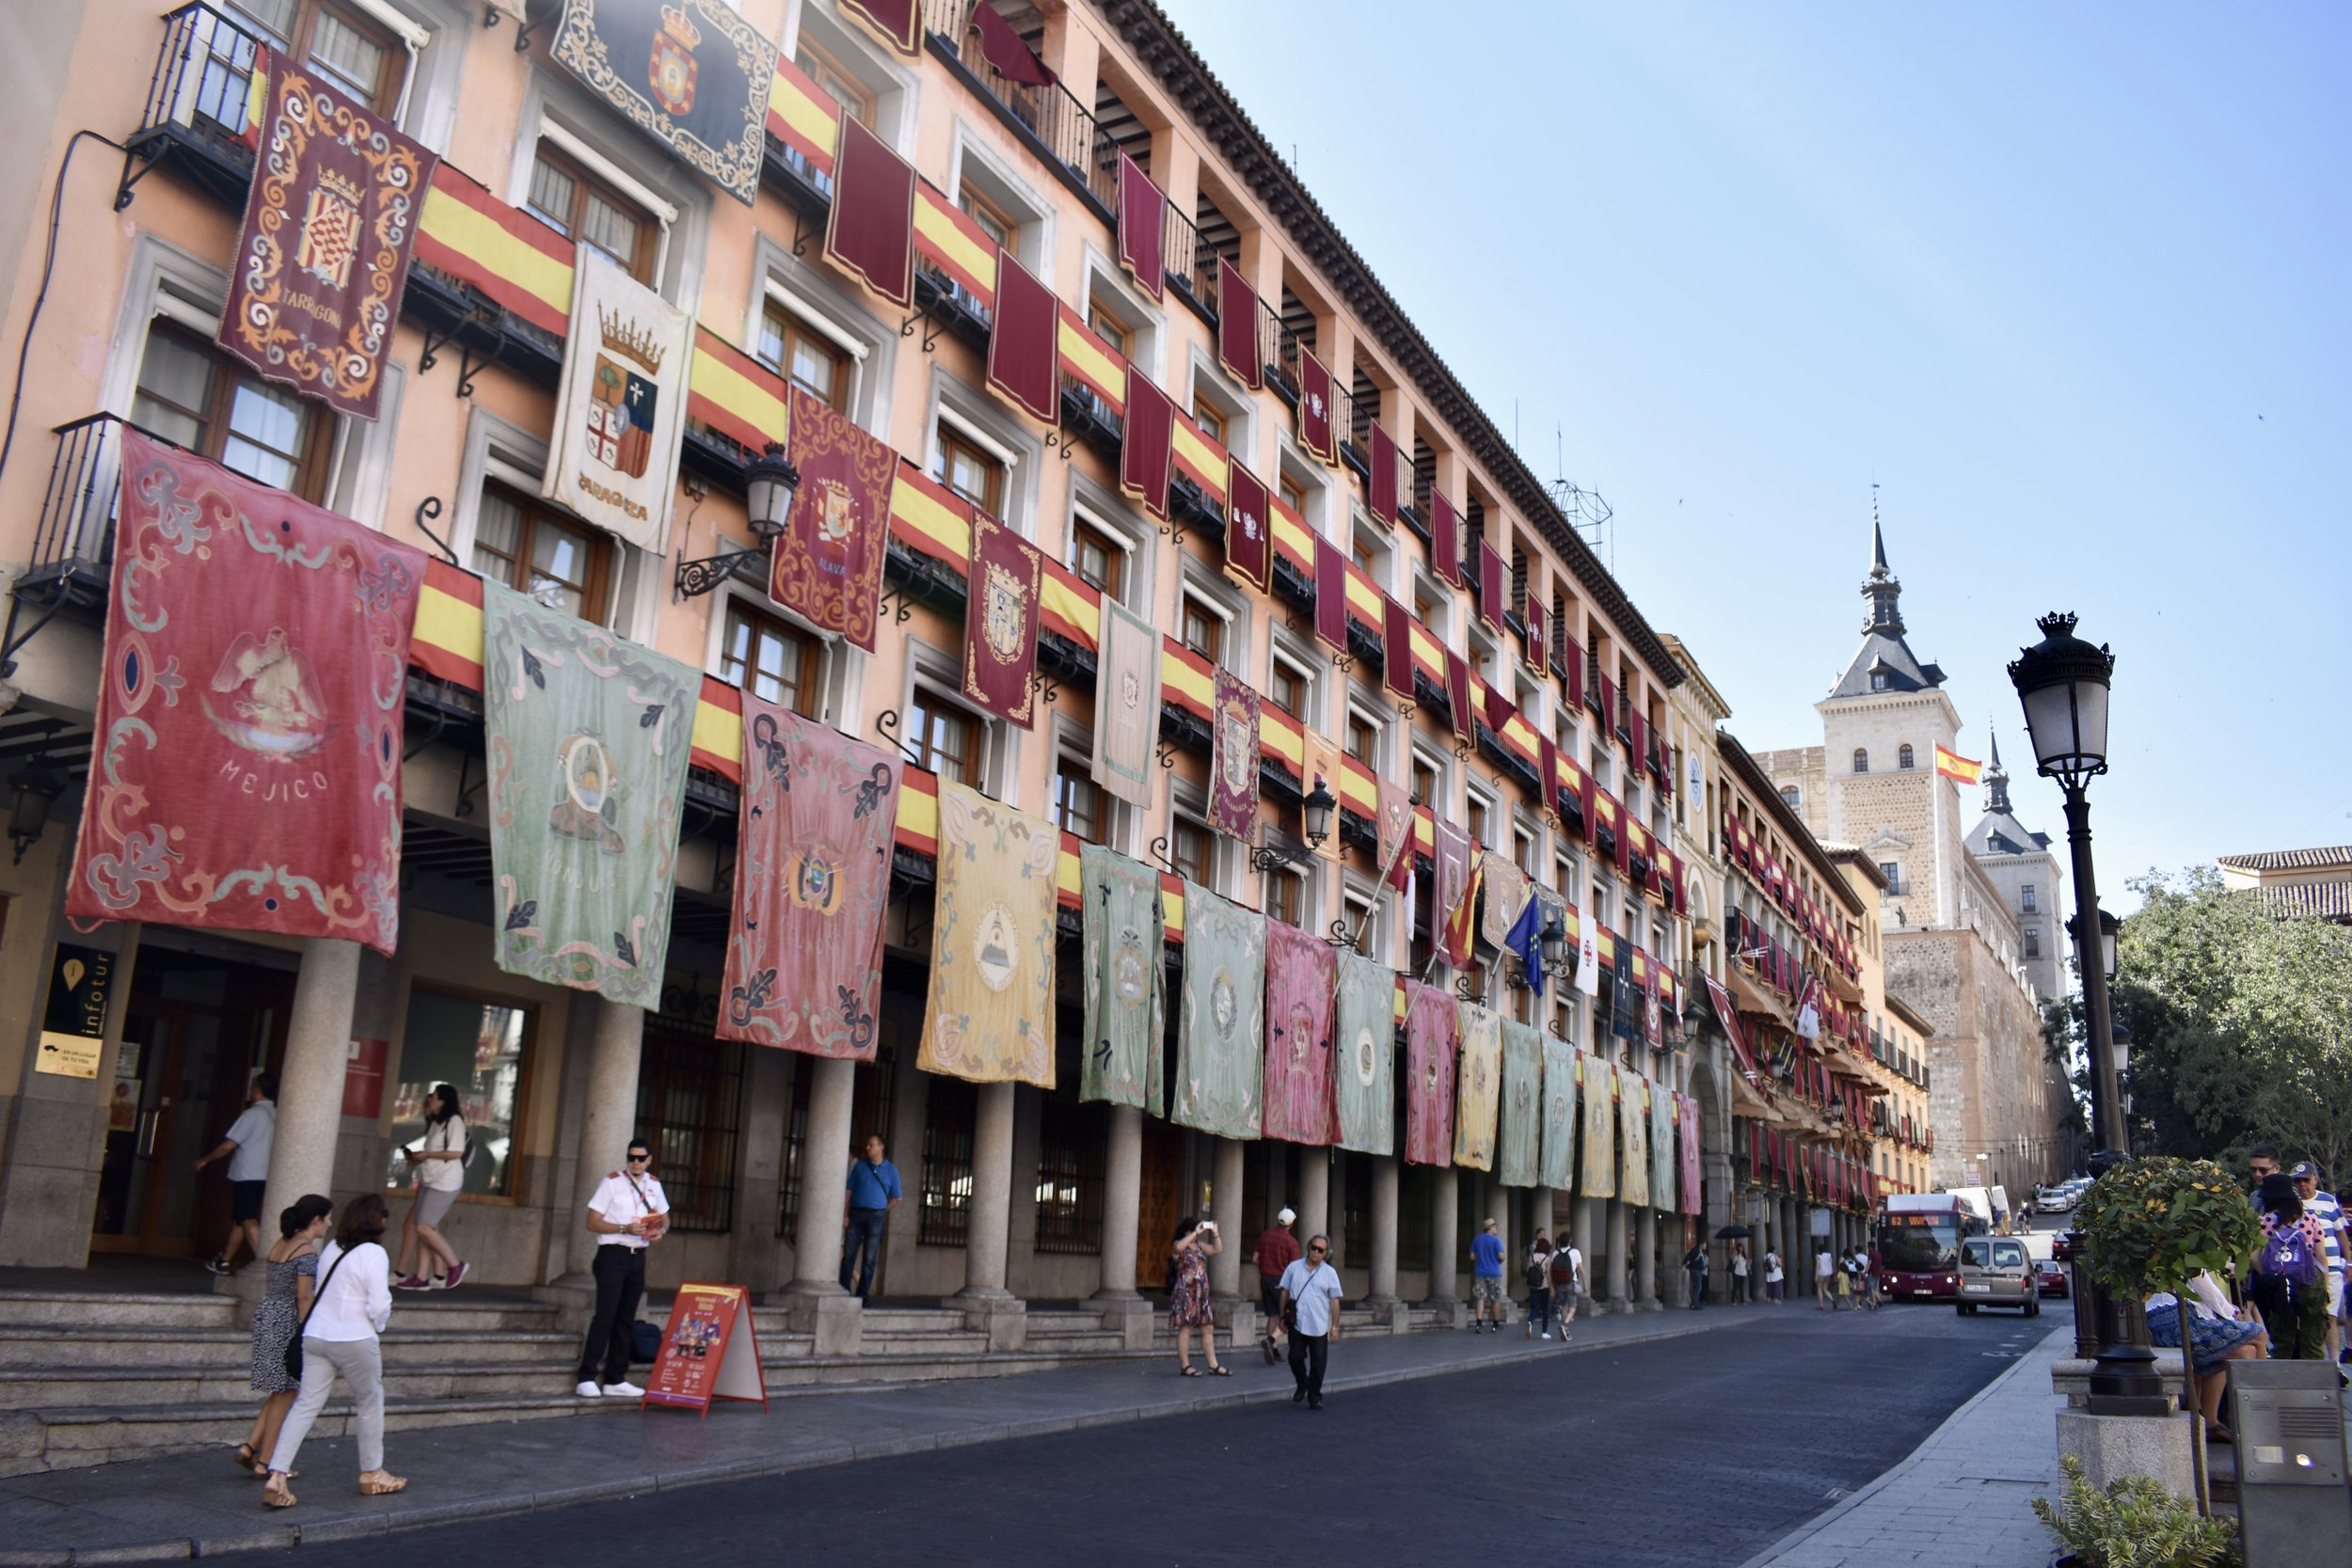 The central Plaza de Zocodover in Toledo displays dozens of decoratively hung flags.